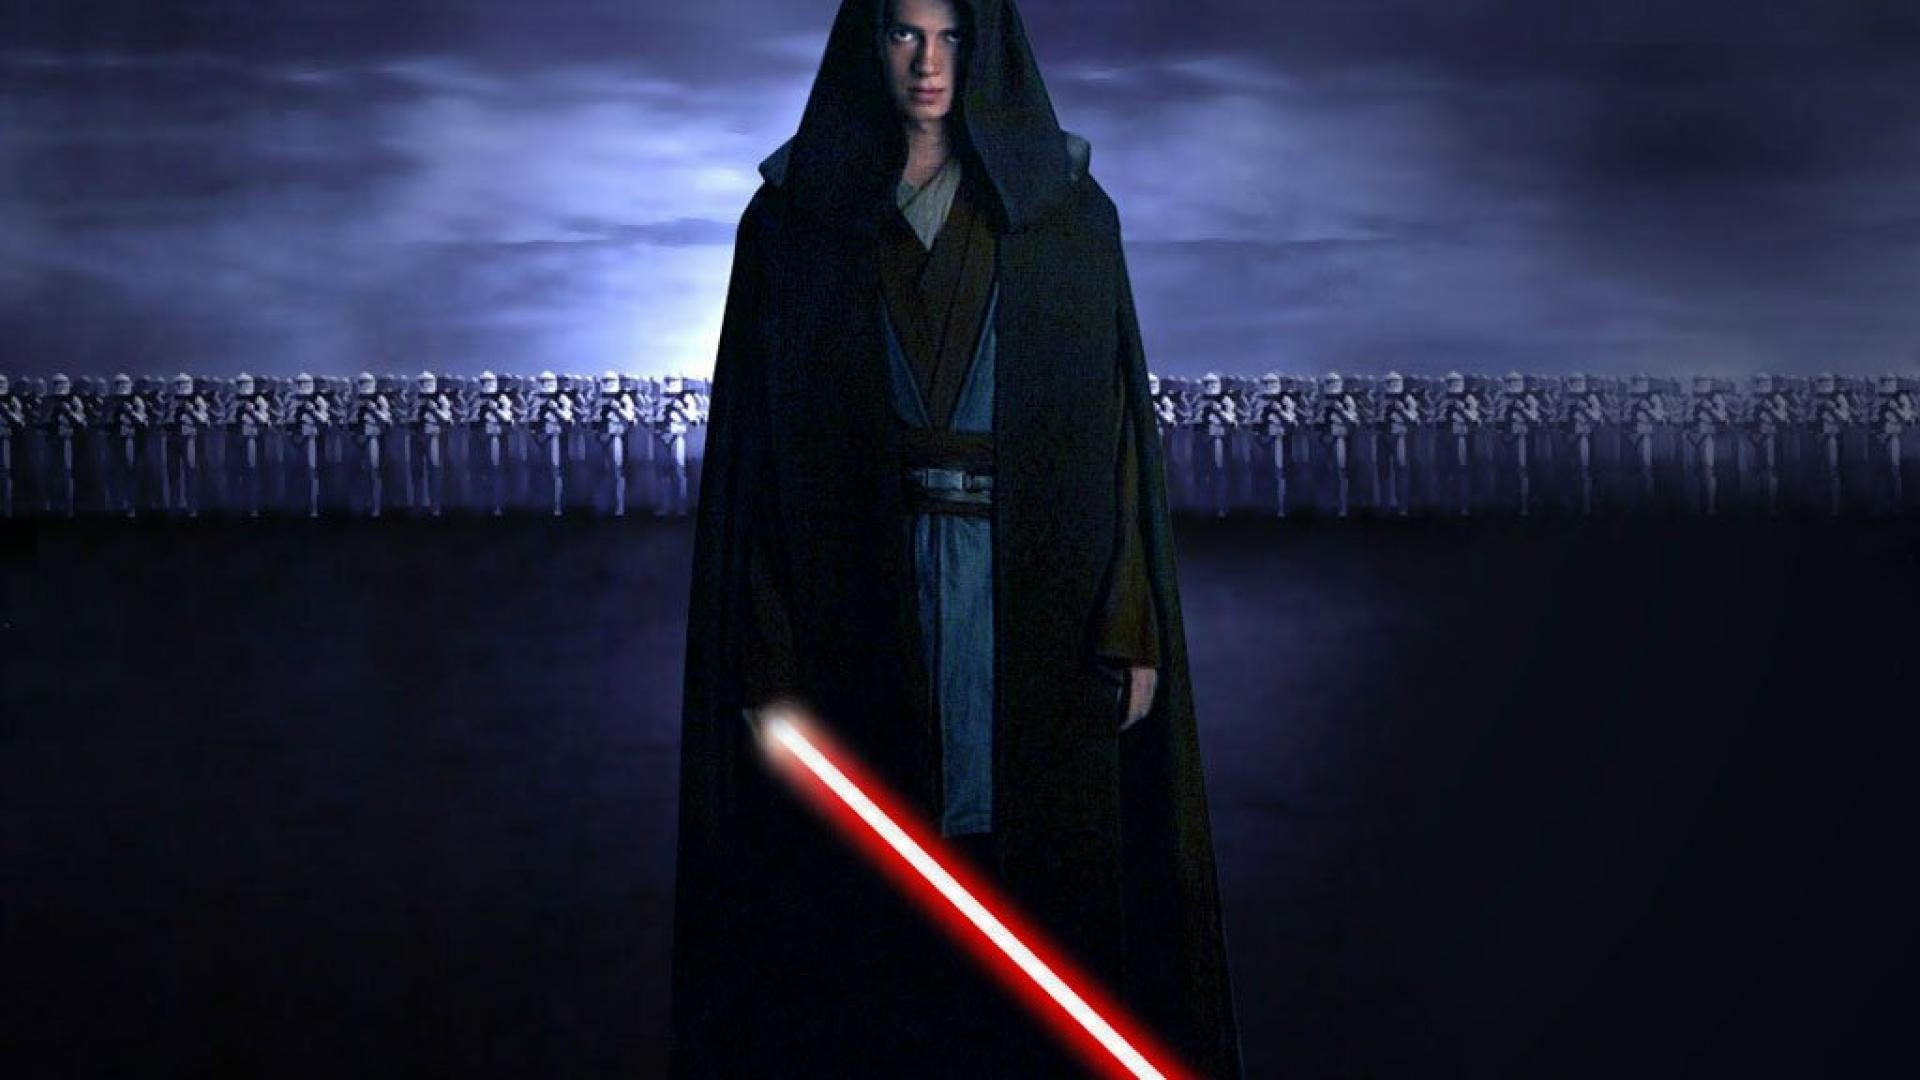 Res: 1920x1080, Star Wars Sith Pictures For Free Wallpaper